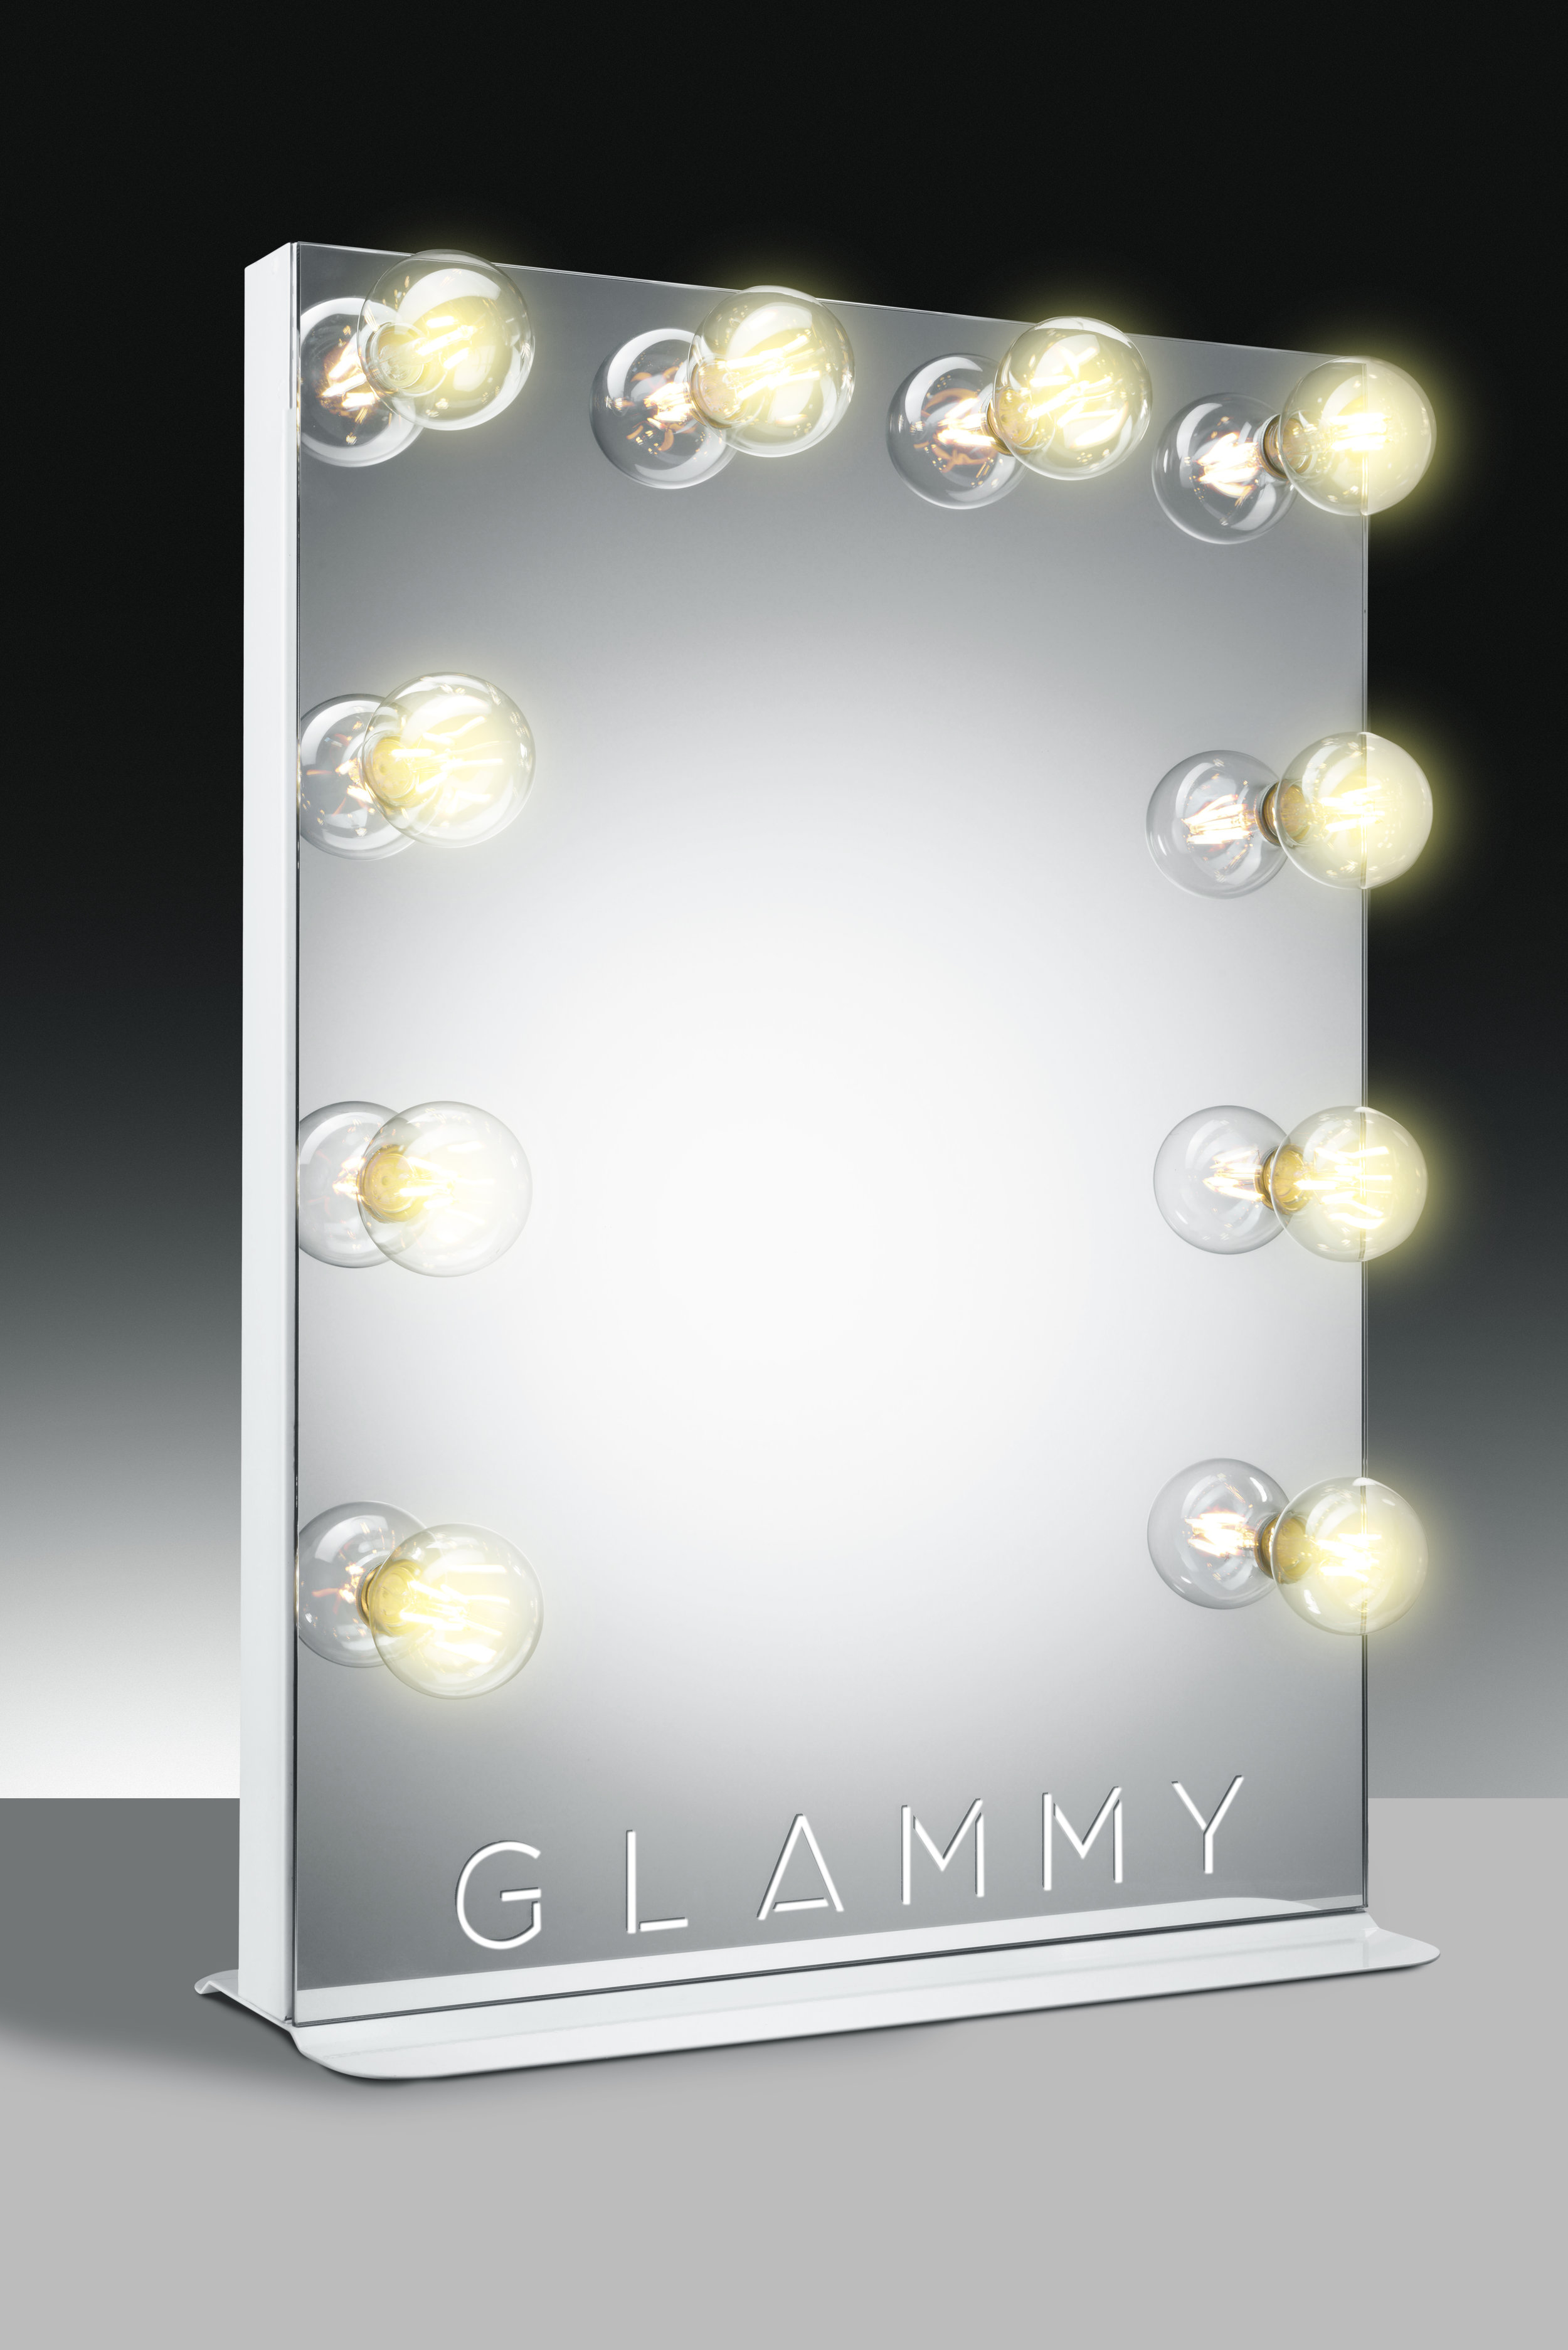 Glammy-Mirror-1-Dark-Background.jpg